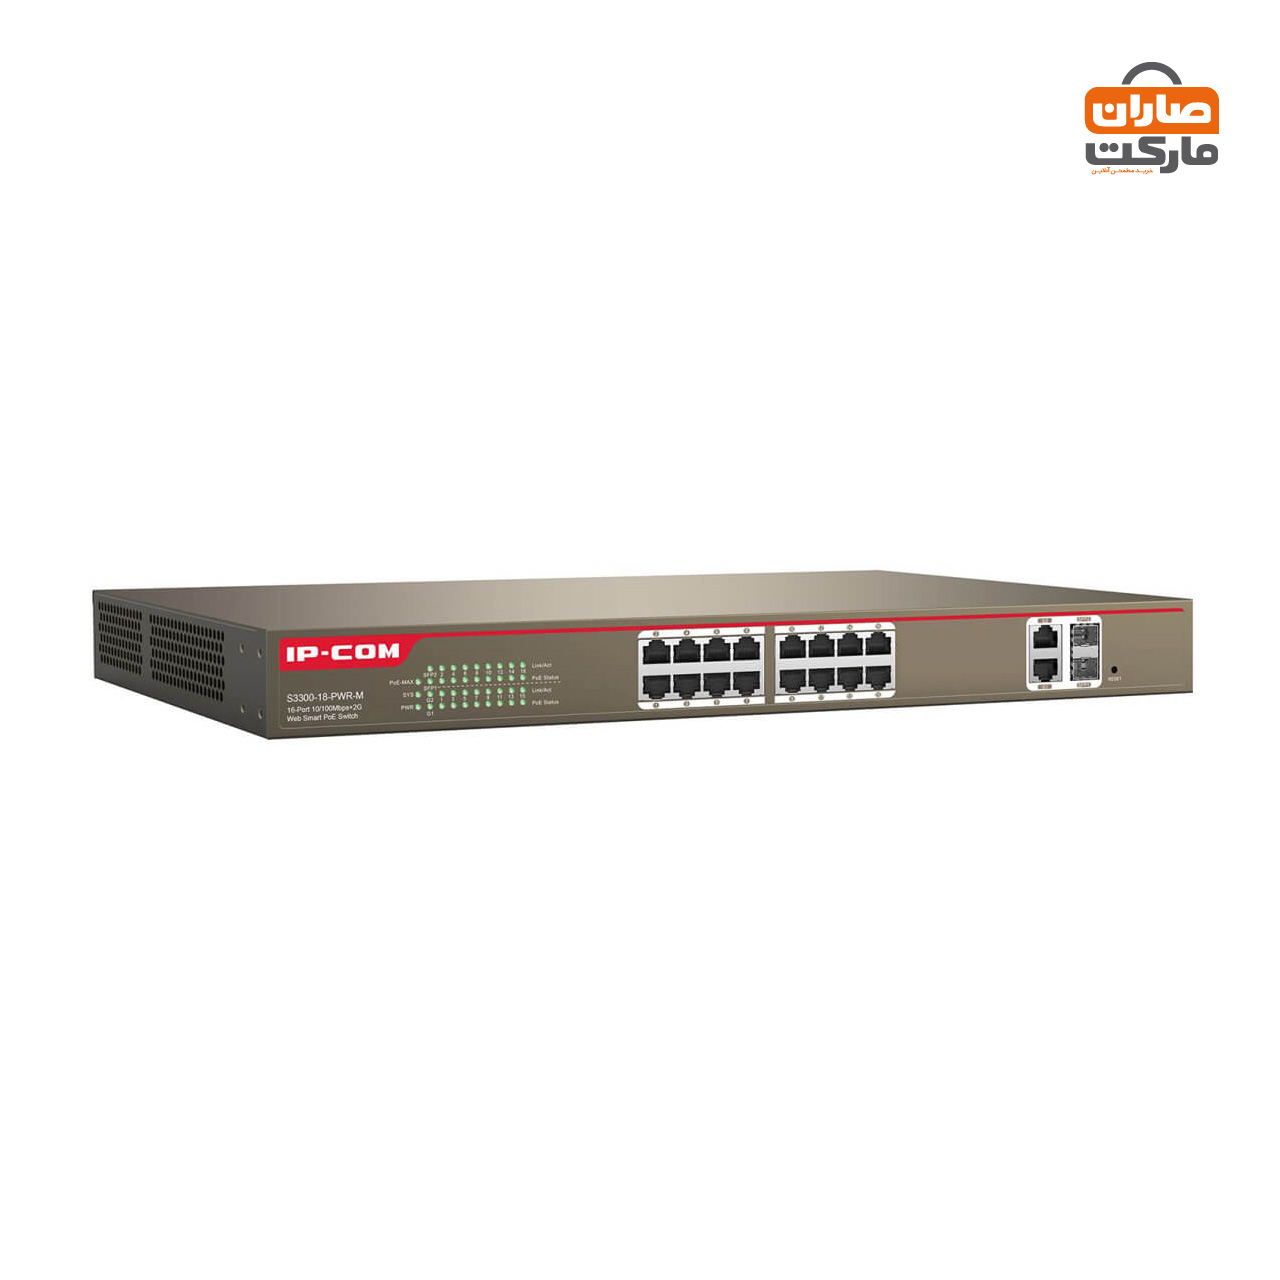 IP-COM-S3300-18-PWR-M-switch-01